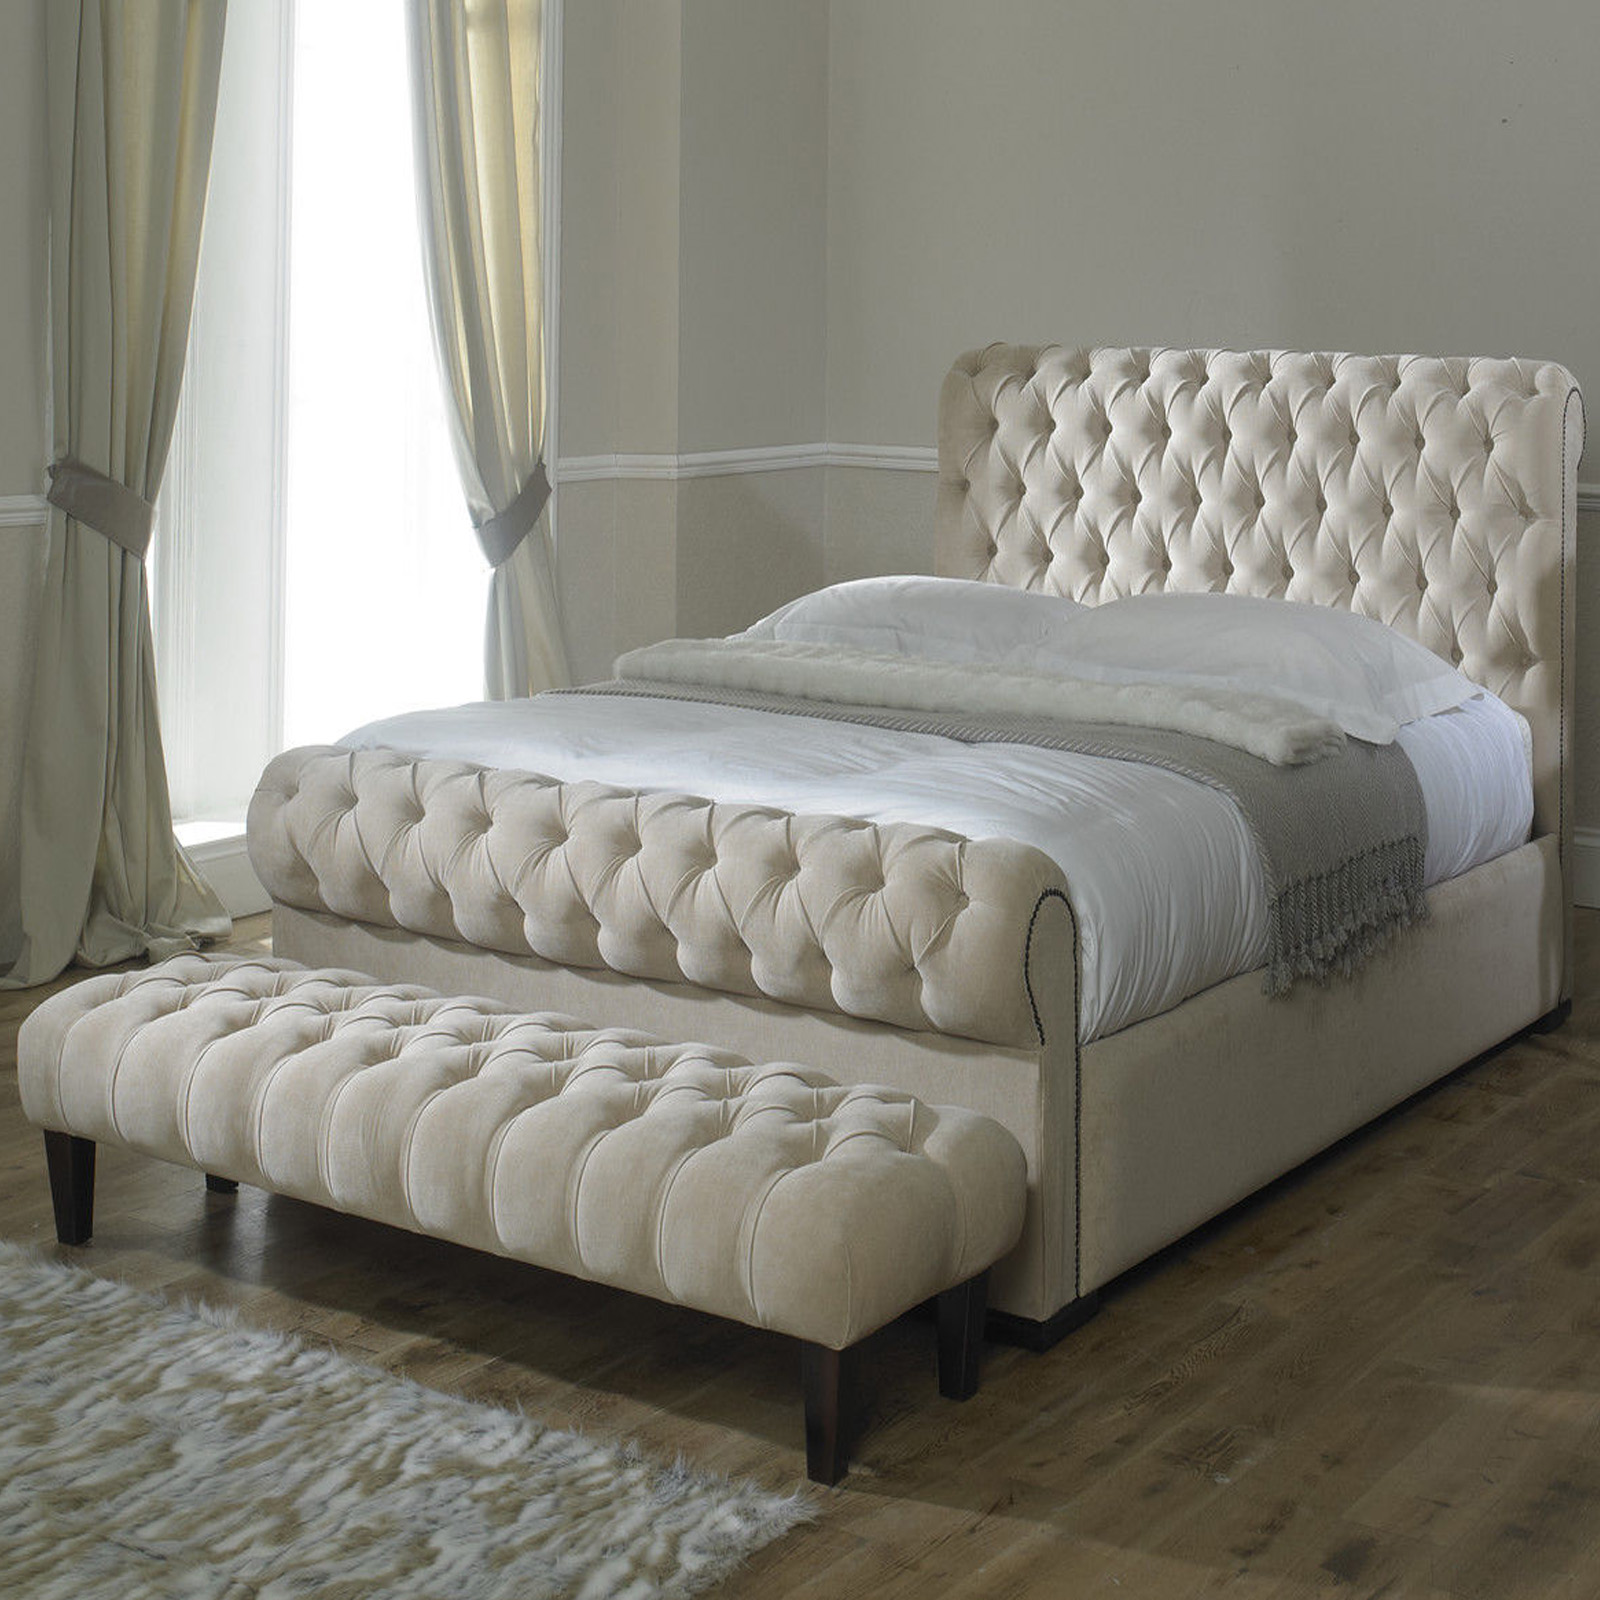 Fabric Bed Frames Rosaline Luxury Fabric Upholstered Bed Frame